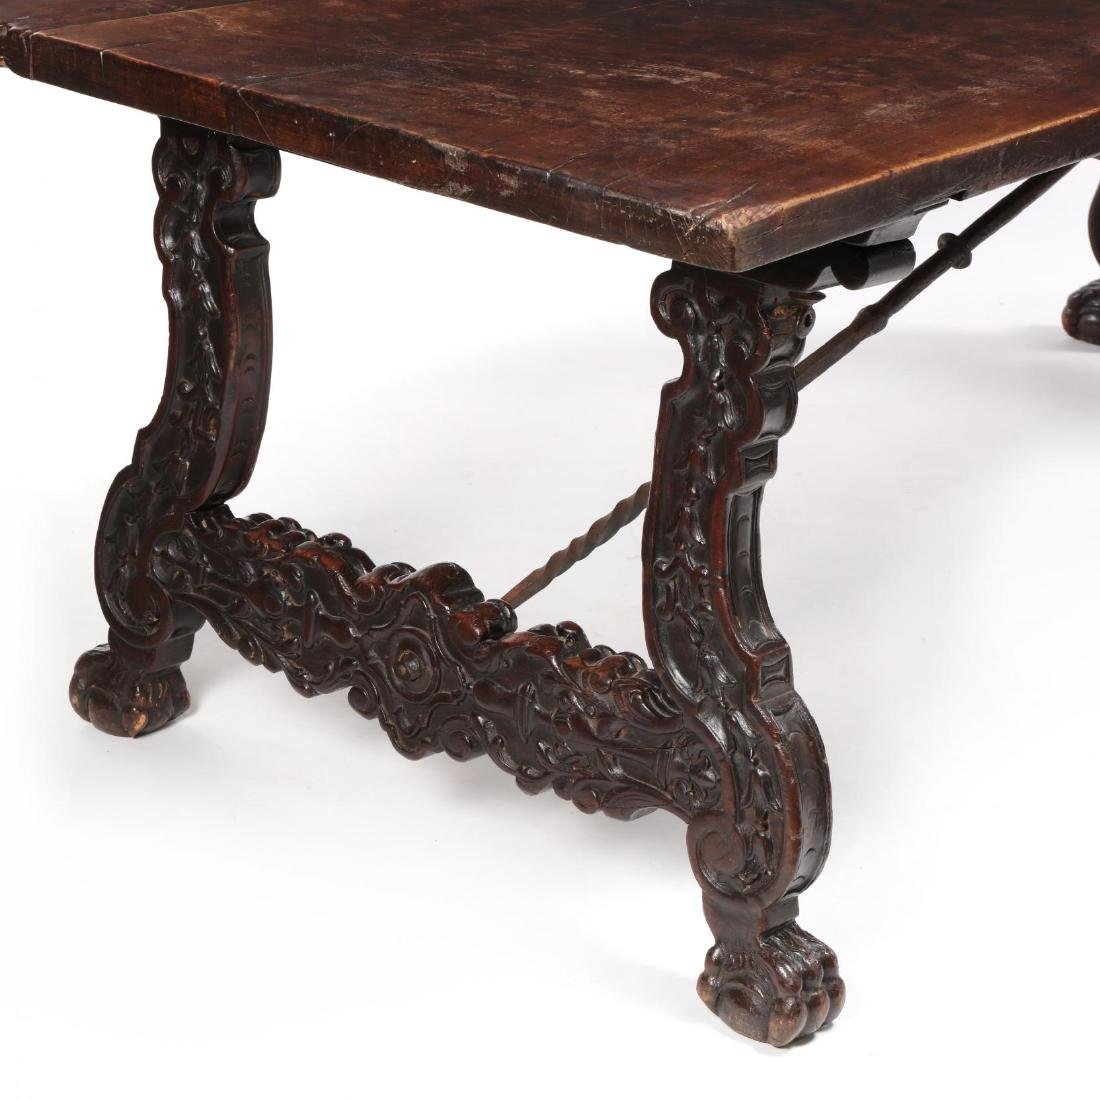 Spanish Baroque Style Carved Dining Table - 2